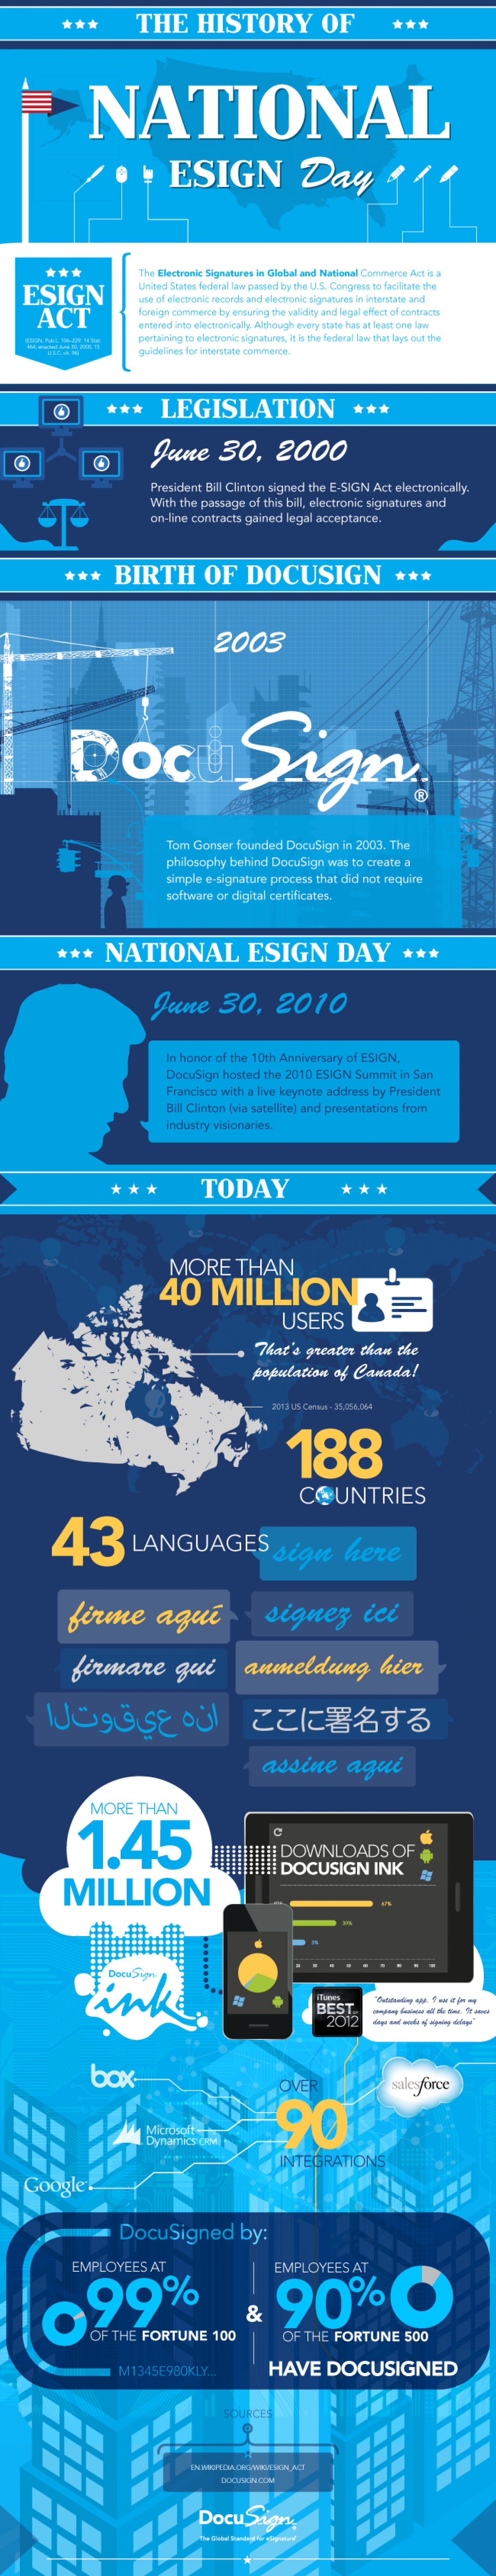 The History of National ESIGN Day Infographic